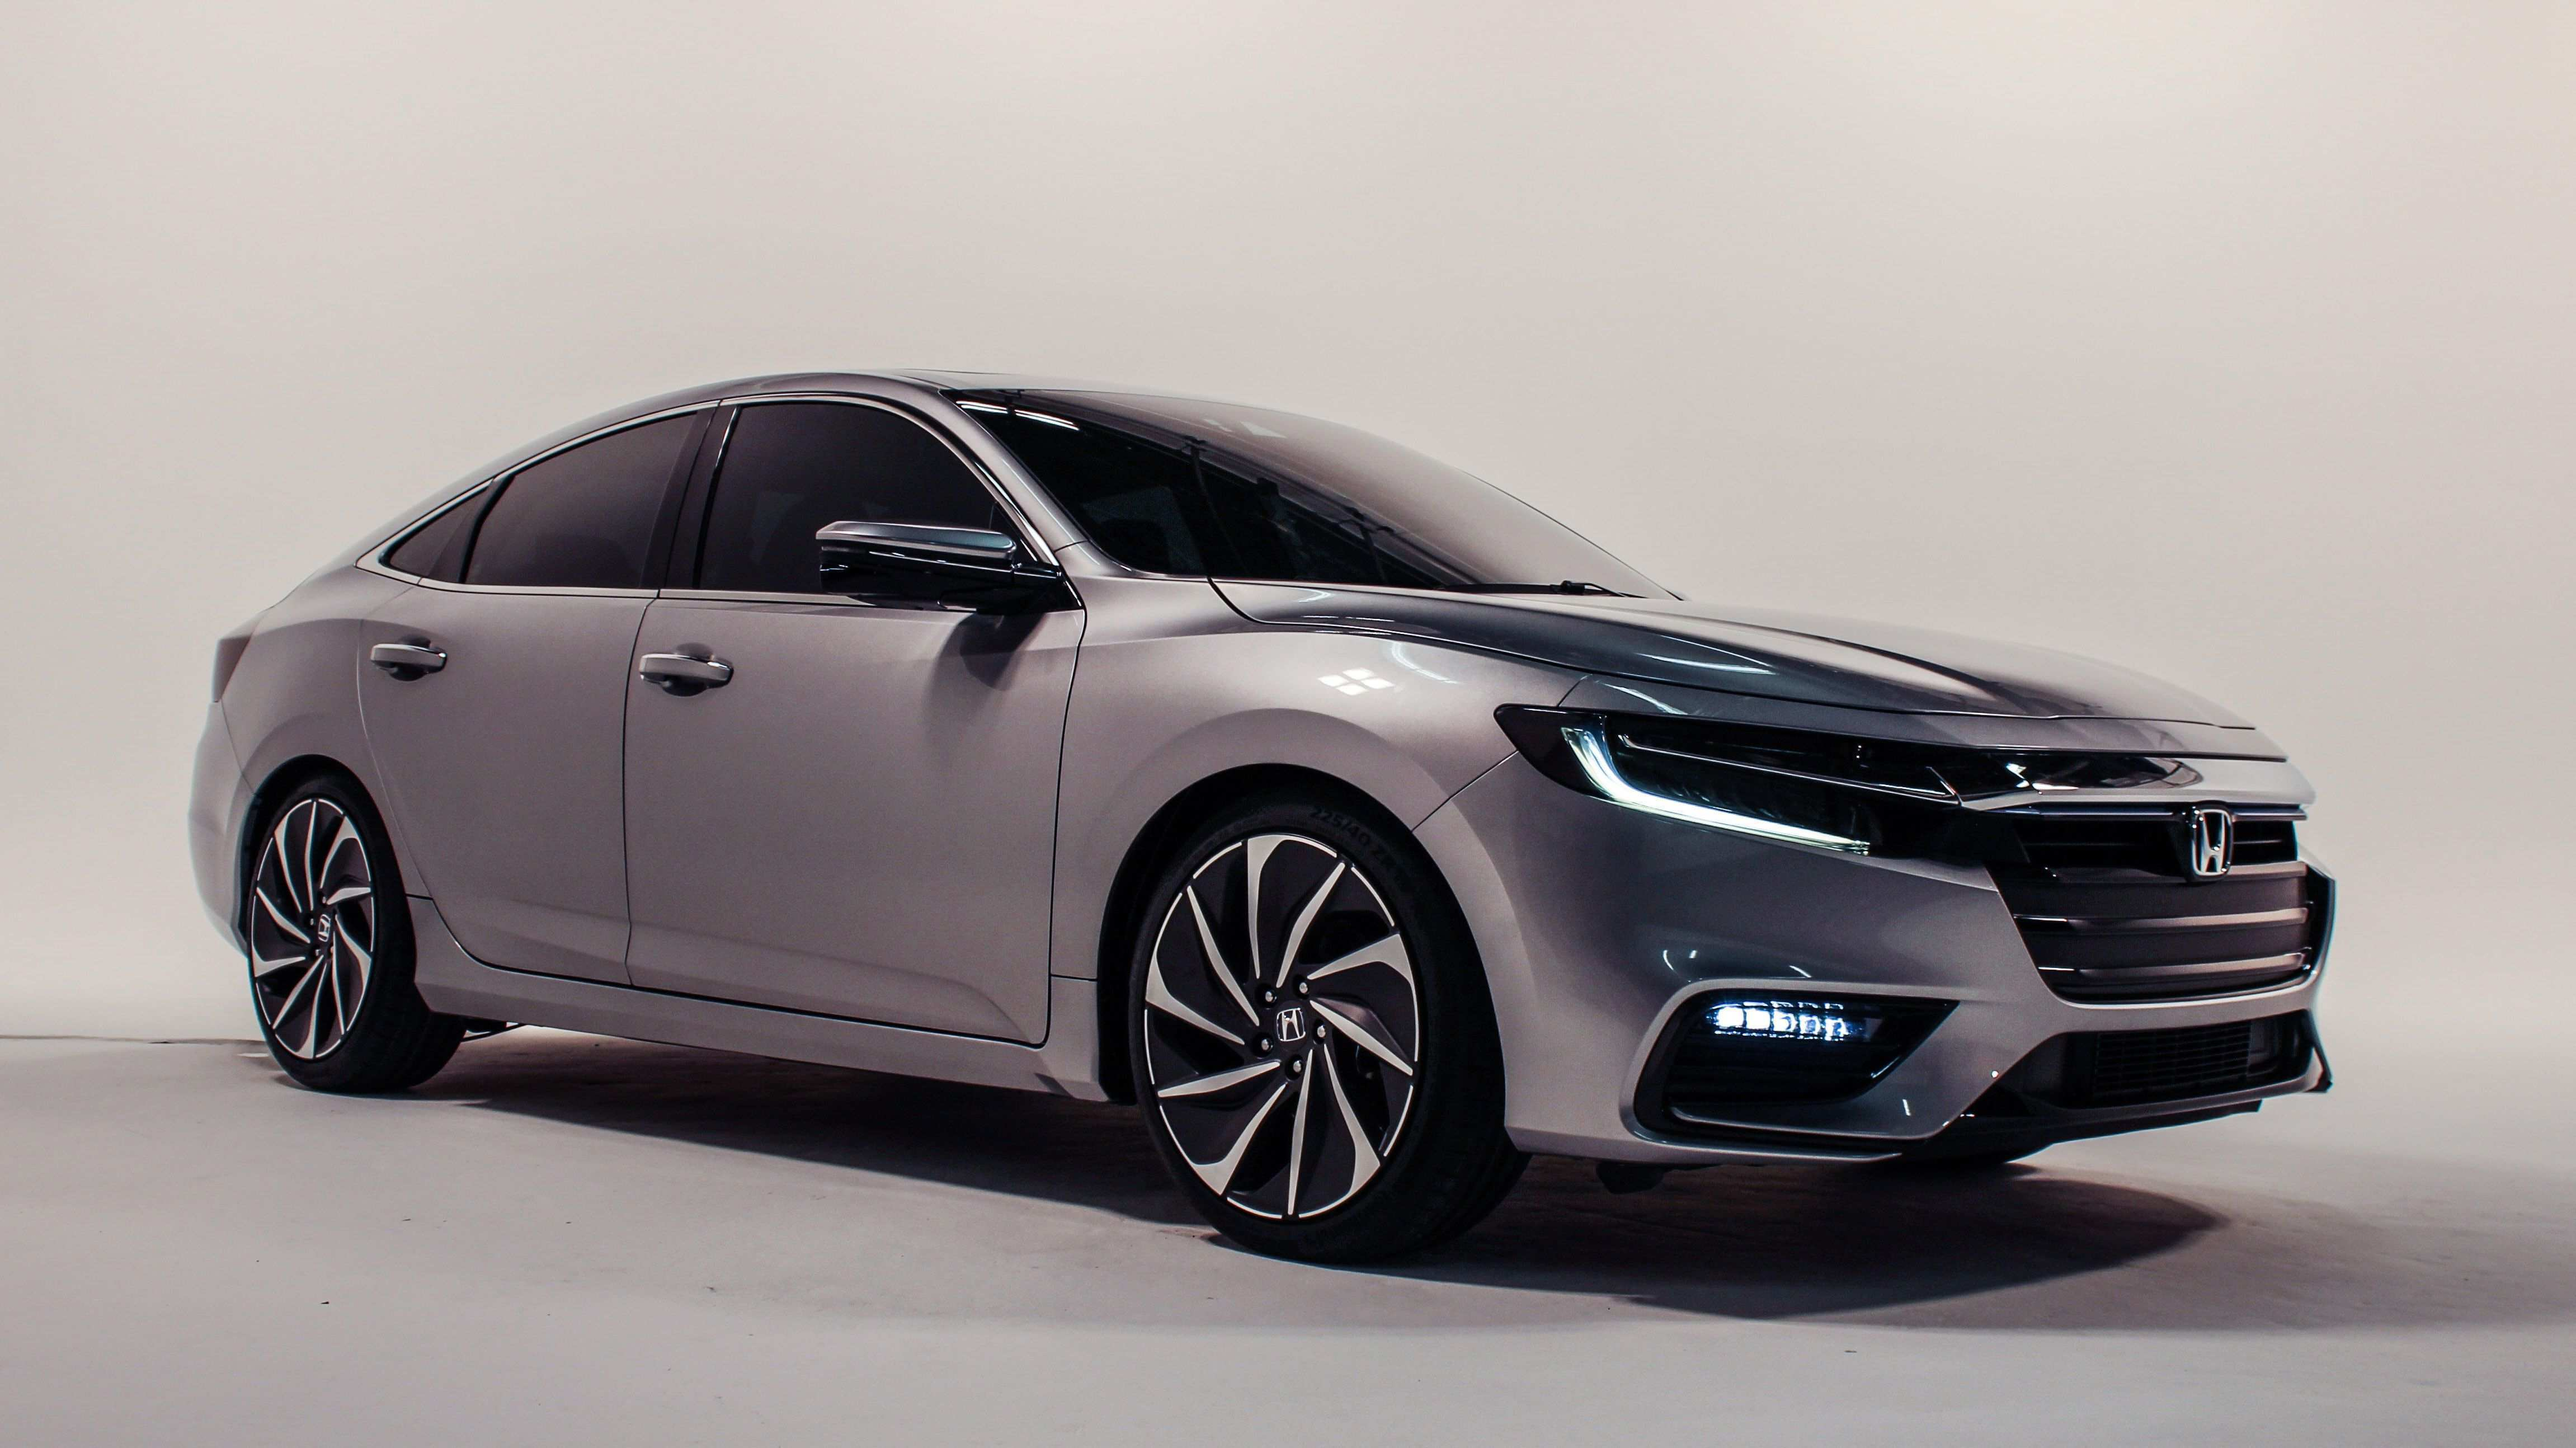 58 Concept of Honda Insight Hatchback 2020 Specs by Honda Insight Hatchback 2020